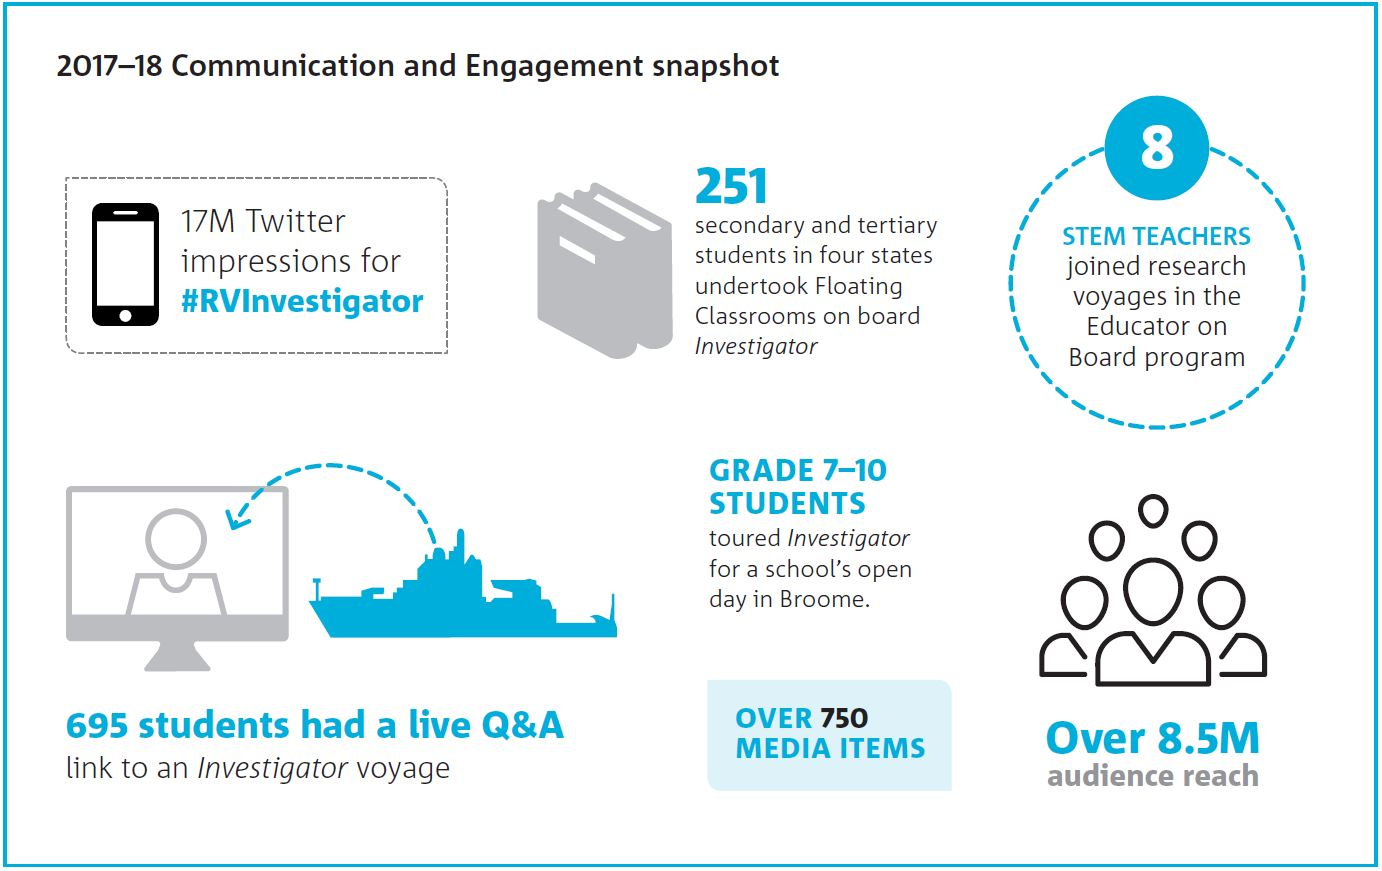 Infographic showing stats for communications and engagement in 2017-18.